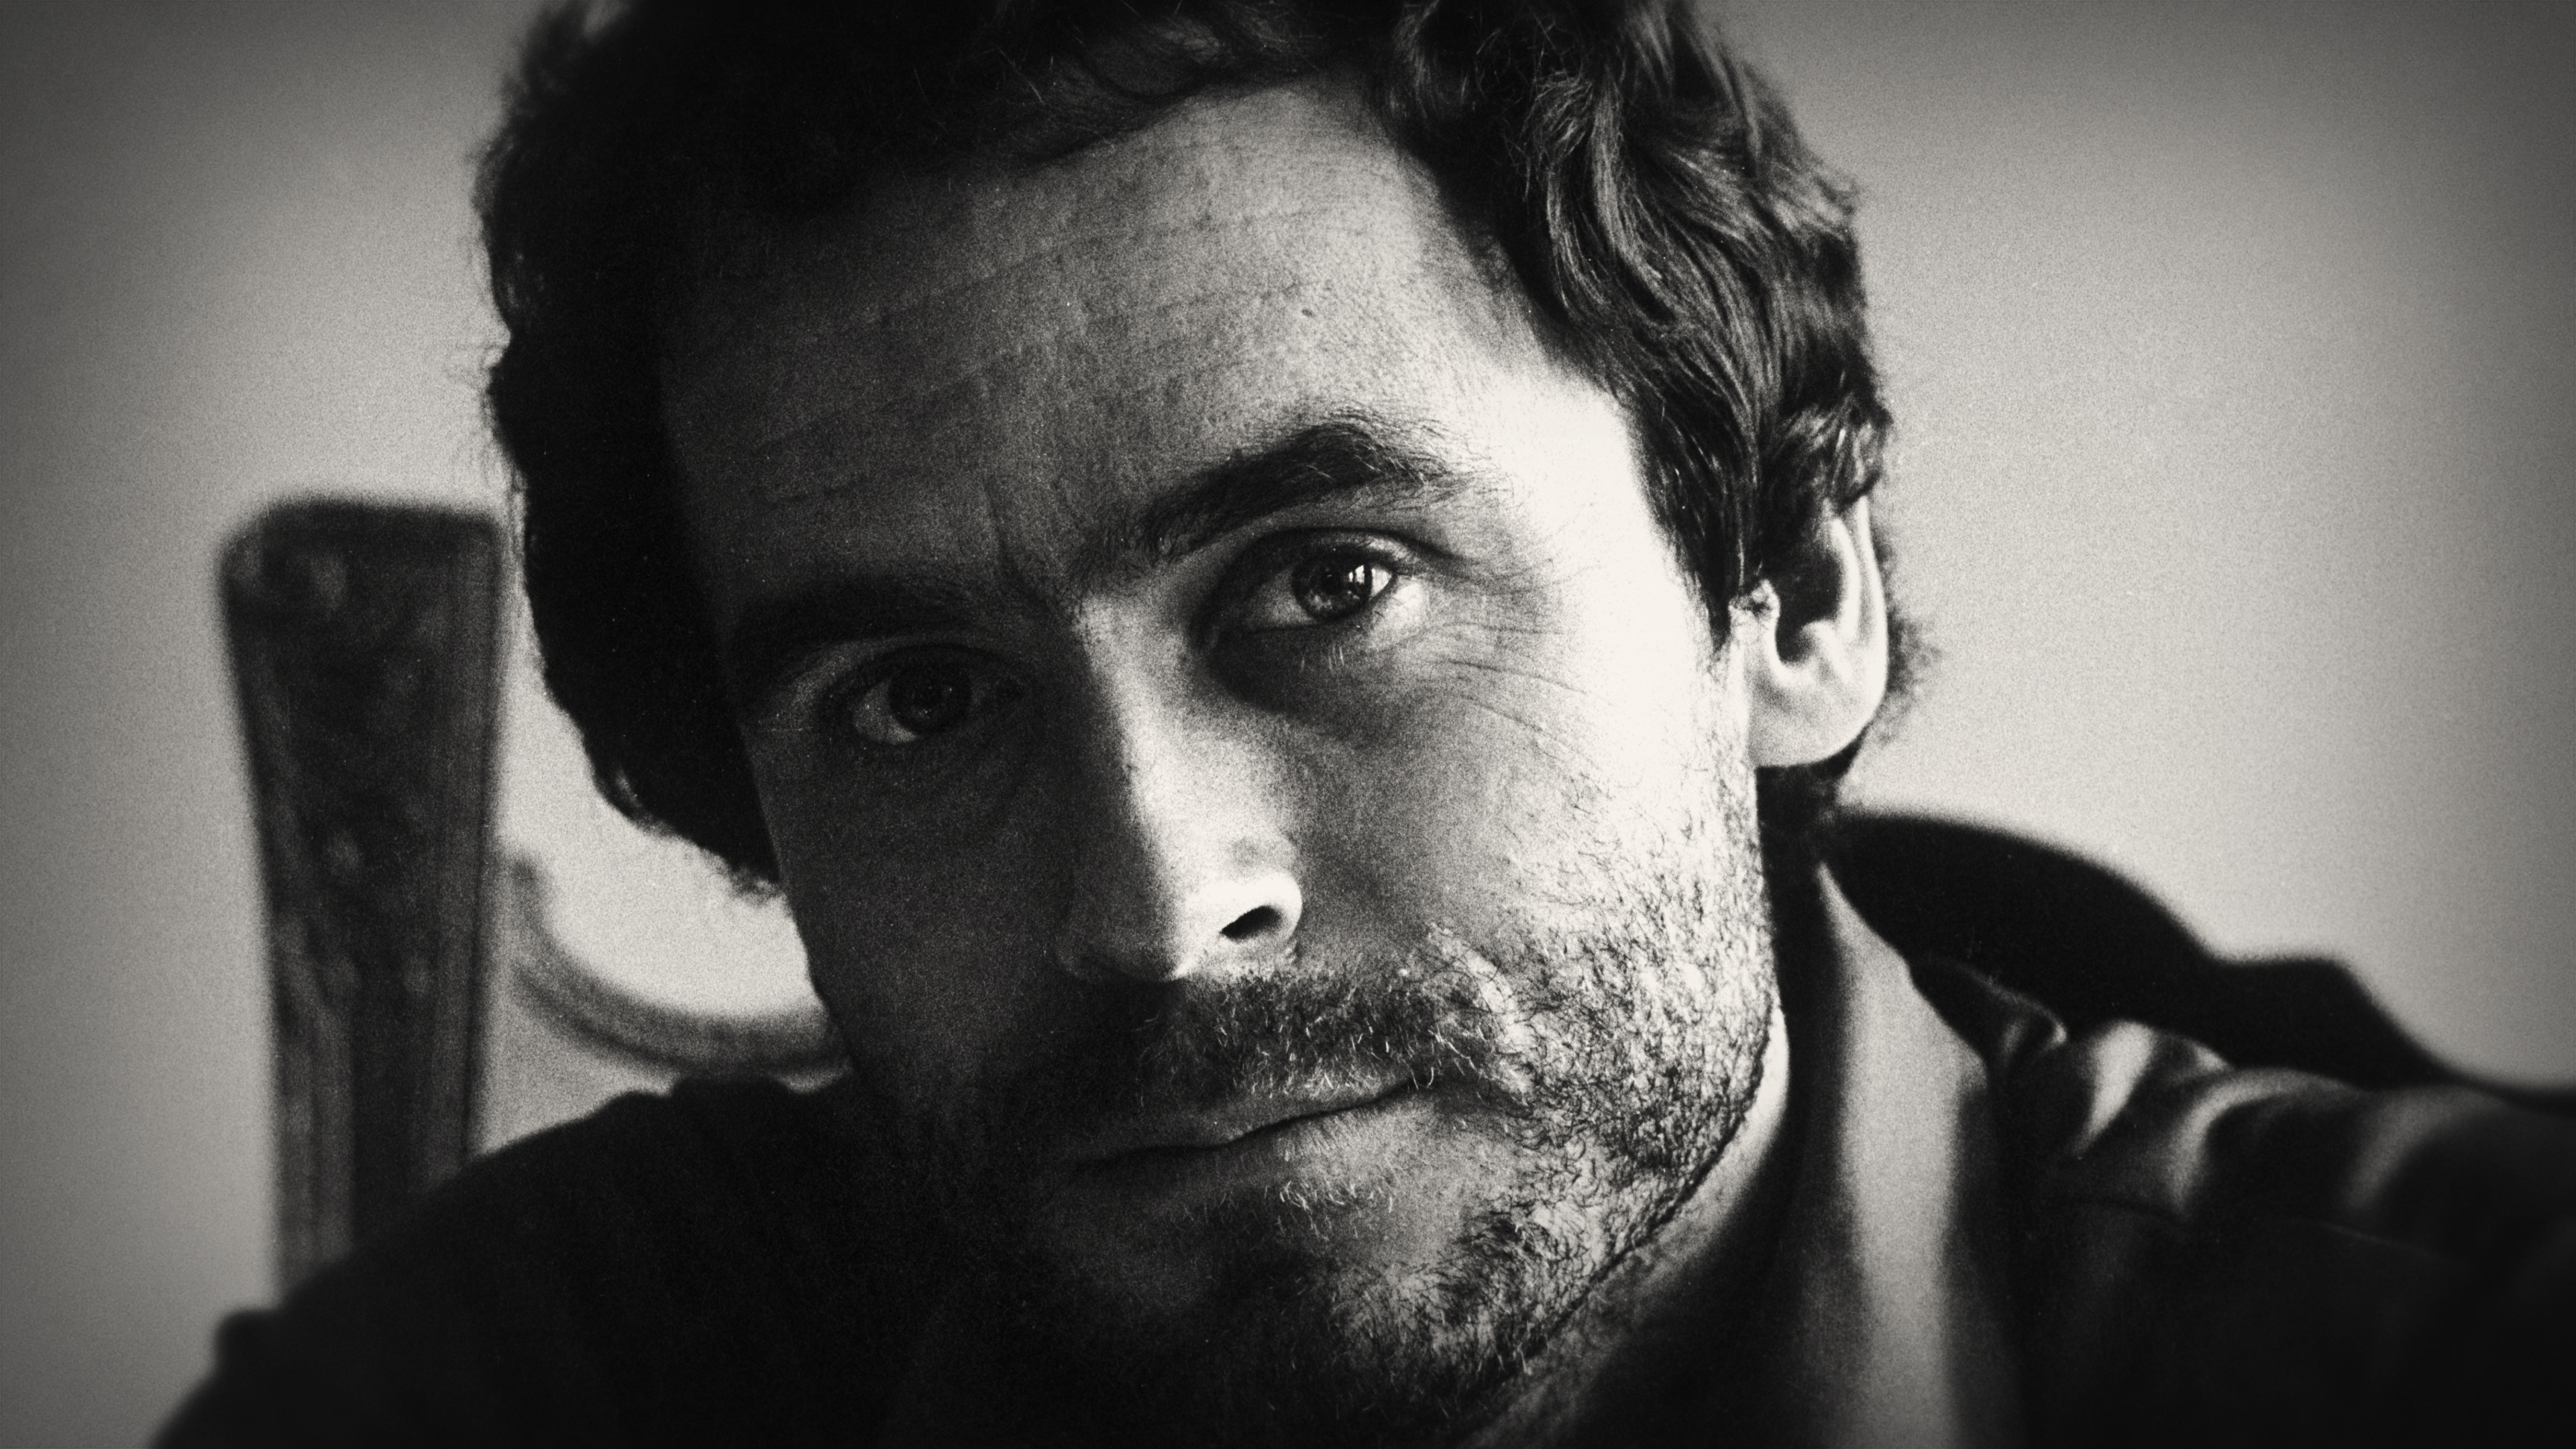 Ted Bundy was executed for his sickening crimes in 1989 (Source: Netflix)